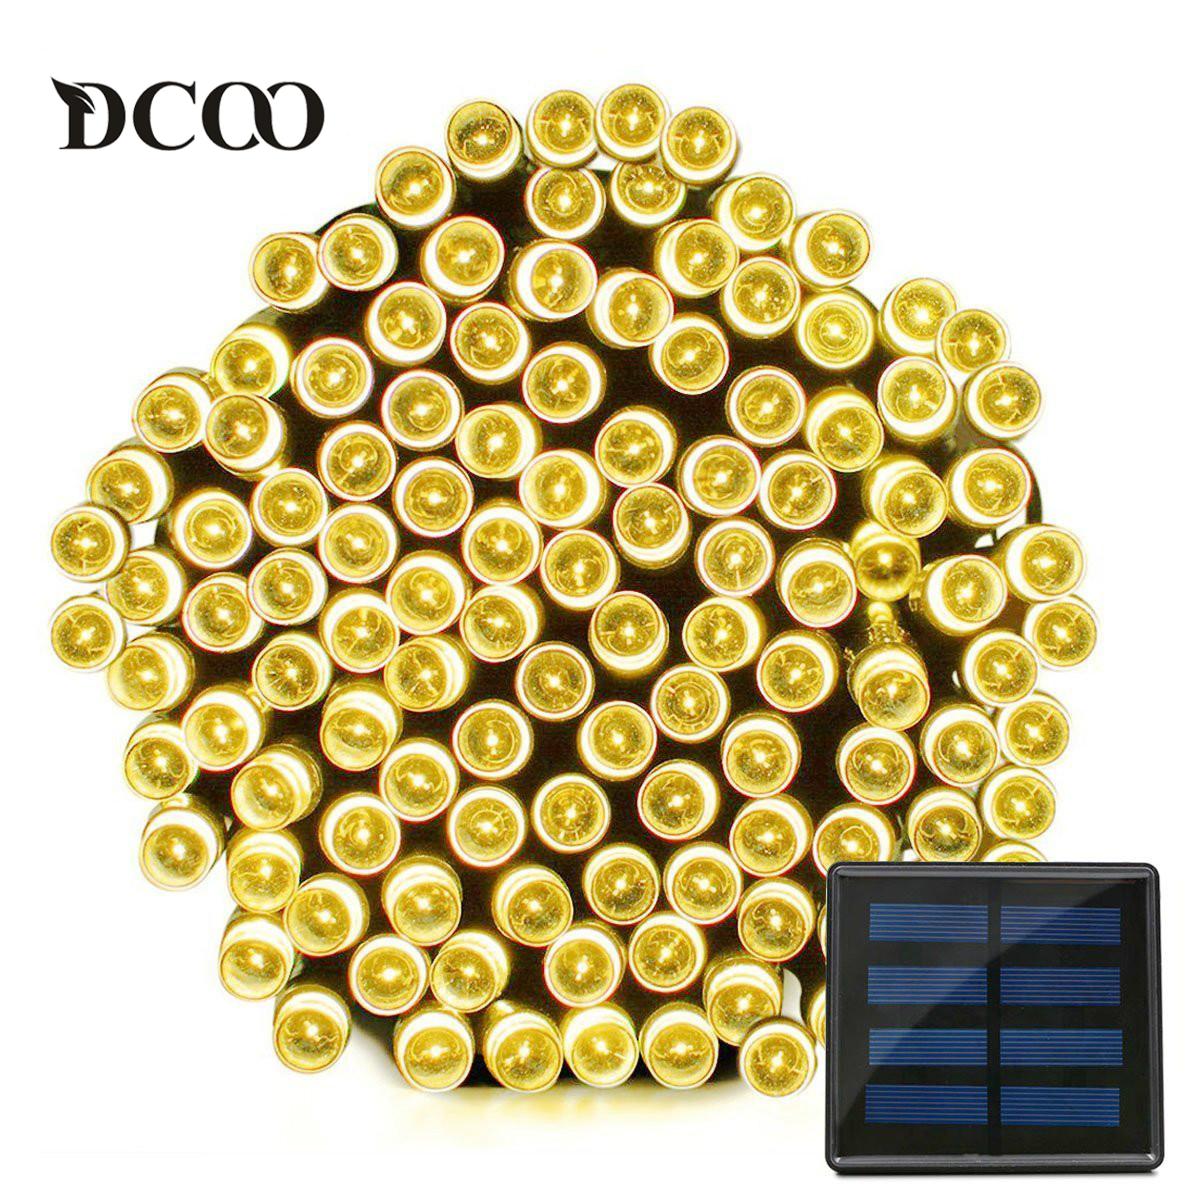 Dcoo Solar LED String Lights 22meter 200 LED Vanntett 8 Moduser Fairy Christmas Lights Outdoor Lighitng Hage Fest Lys